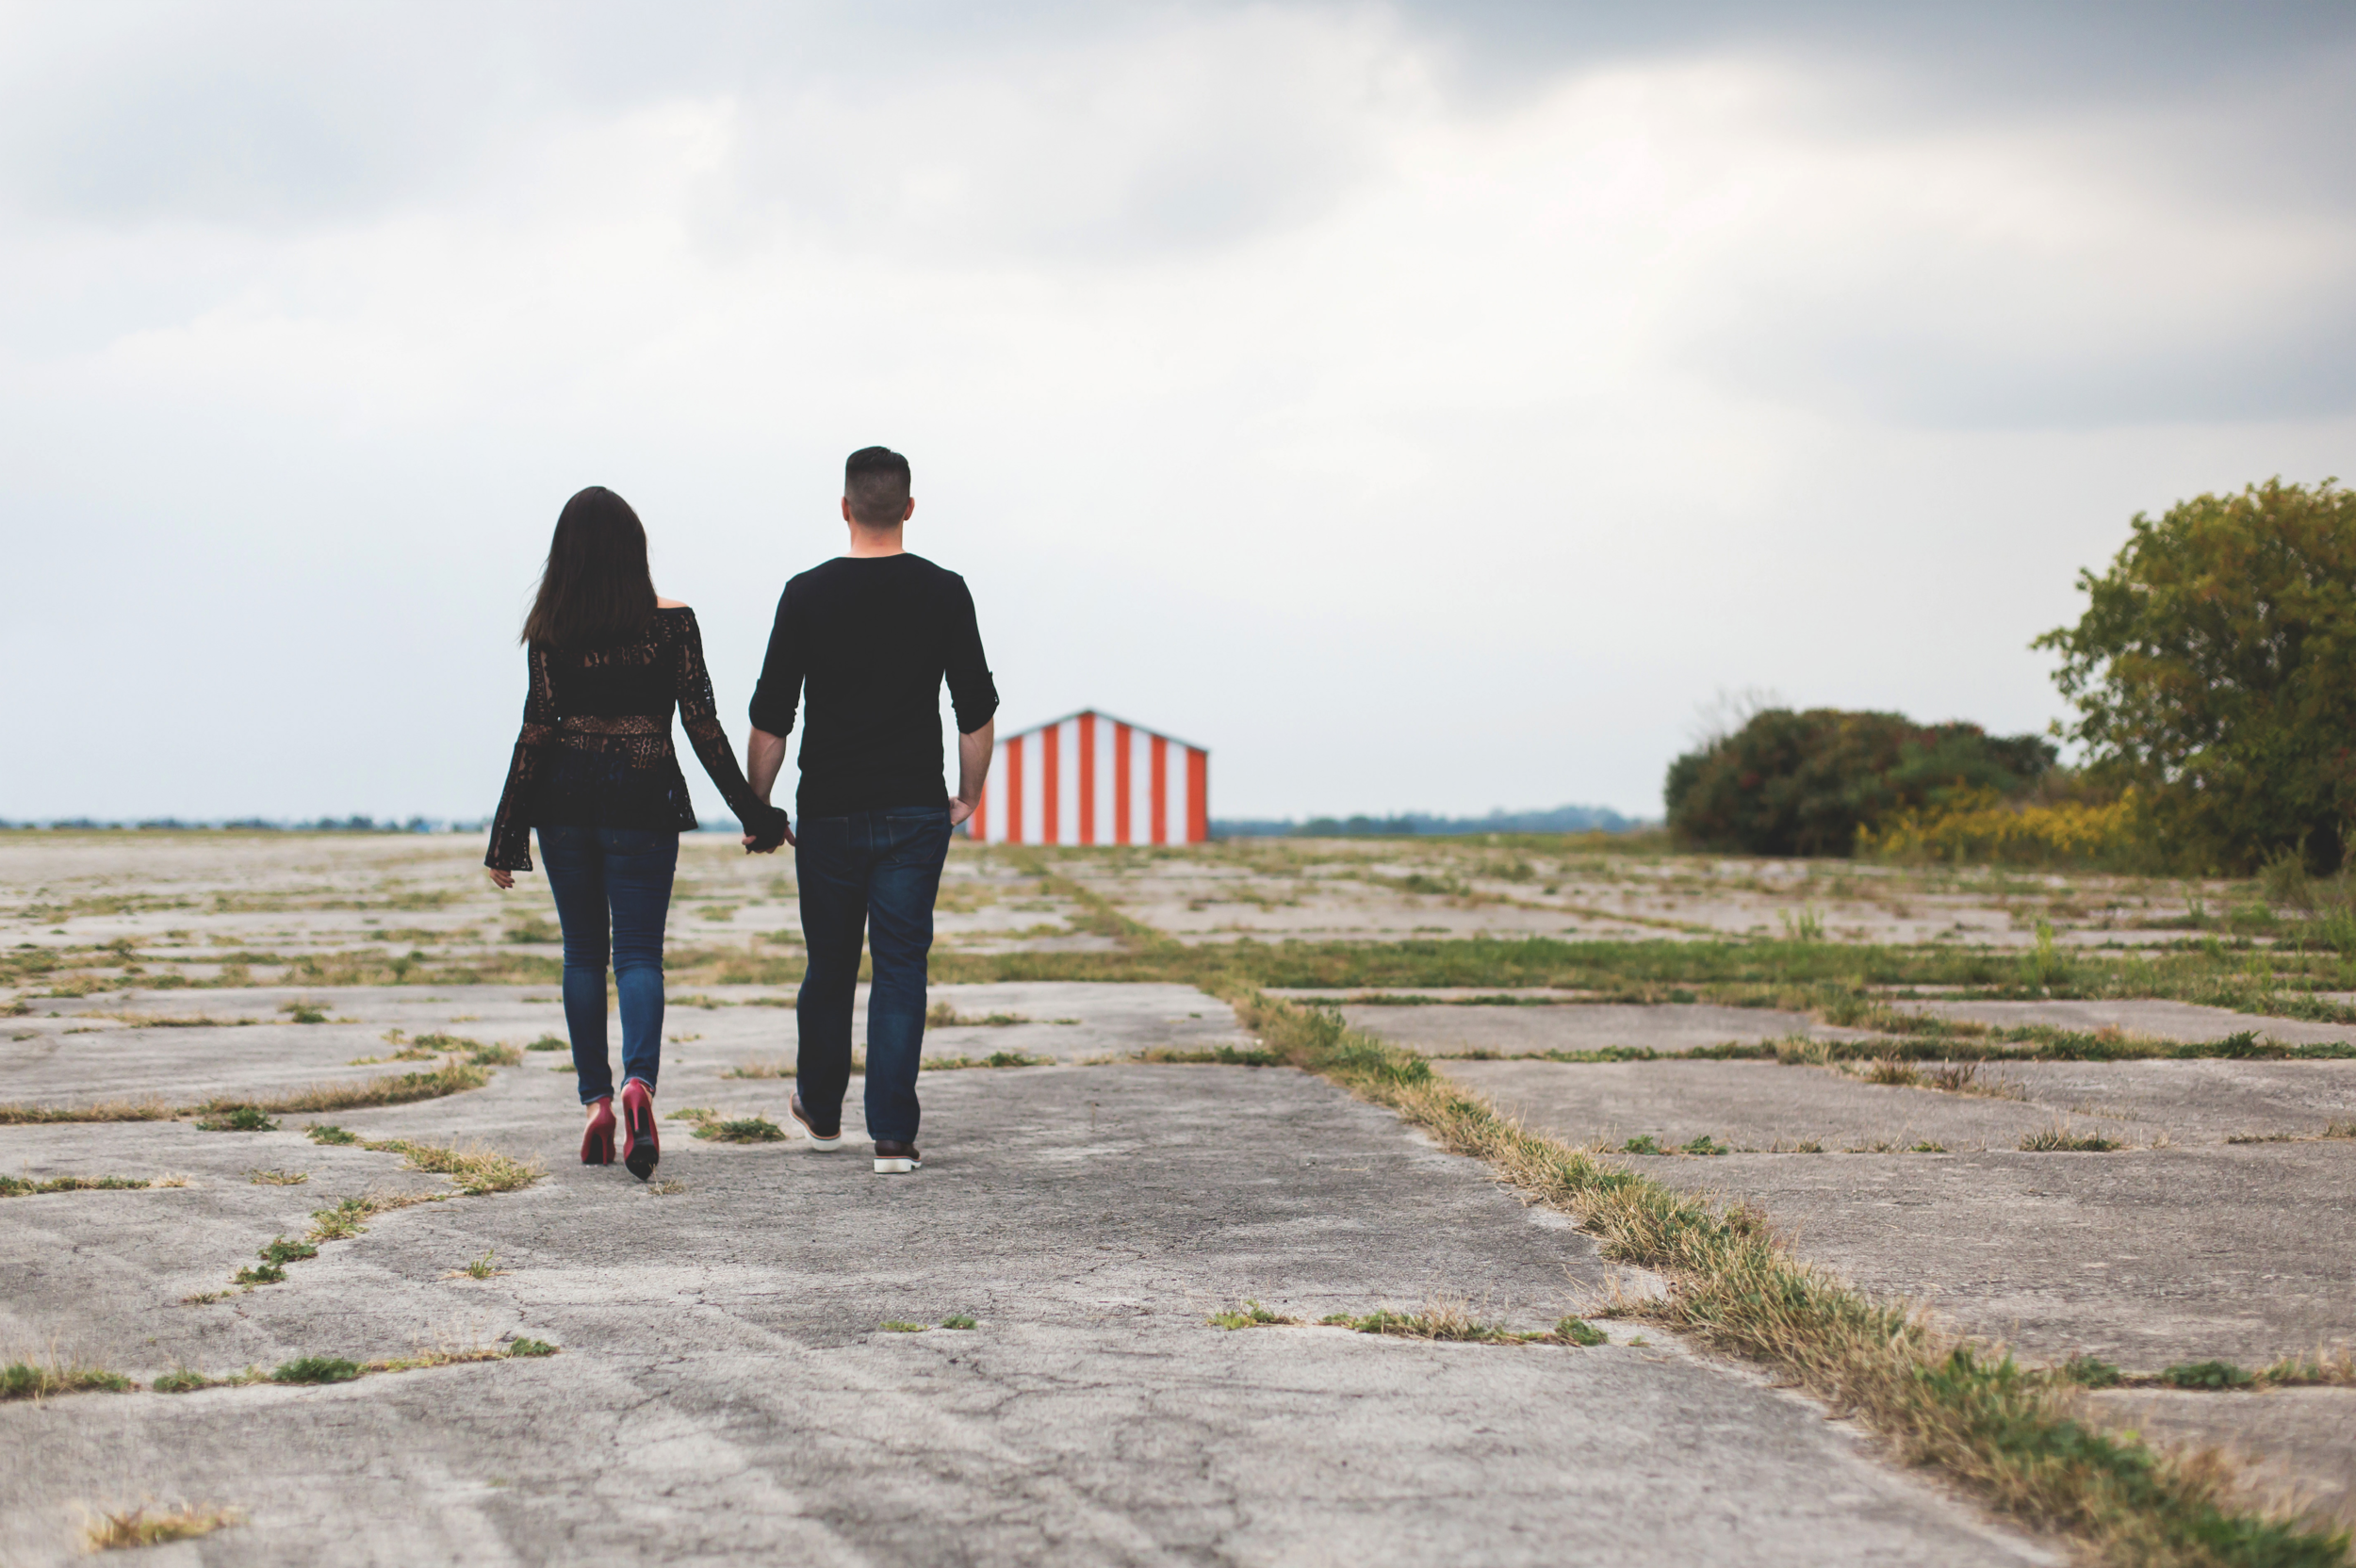 Engagement-Session-Hamilton-Burlington-Oakville-Toronto-Niagara-Wedding-Photographer-Engaged-Photography-Brantford-Airport-HamOnt-Engaged-Moments-by-Lauren-Photo-Image-14.png